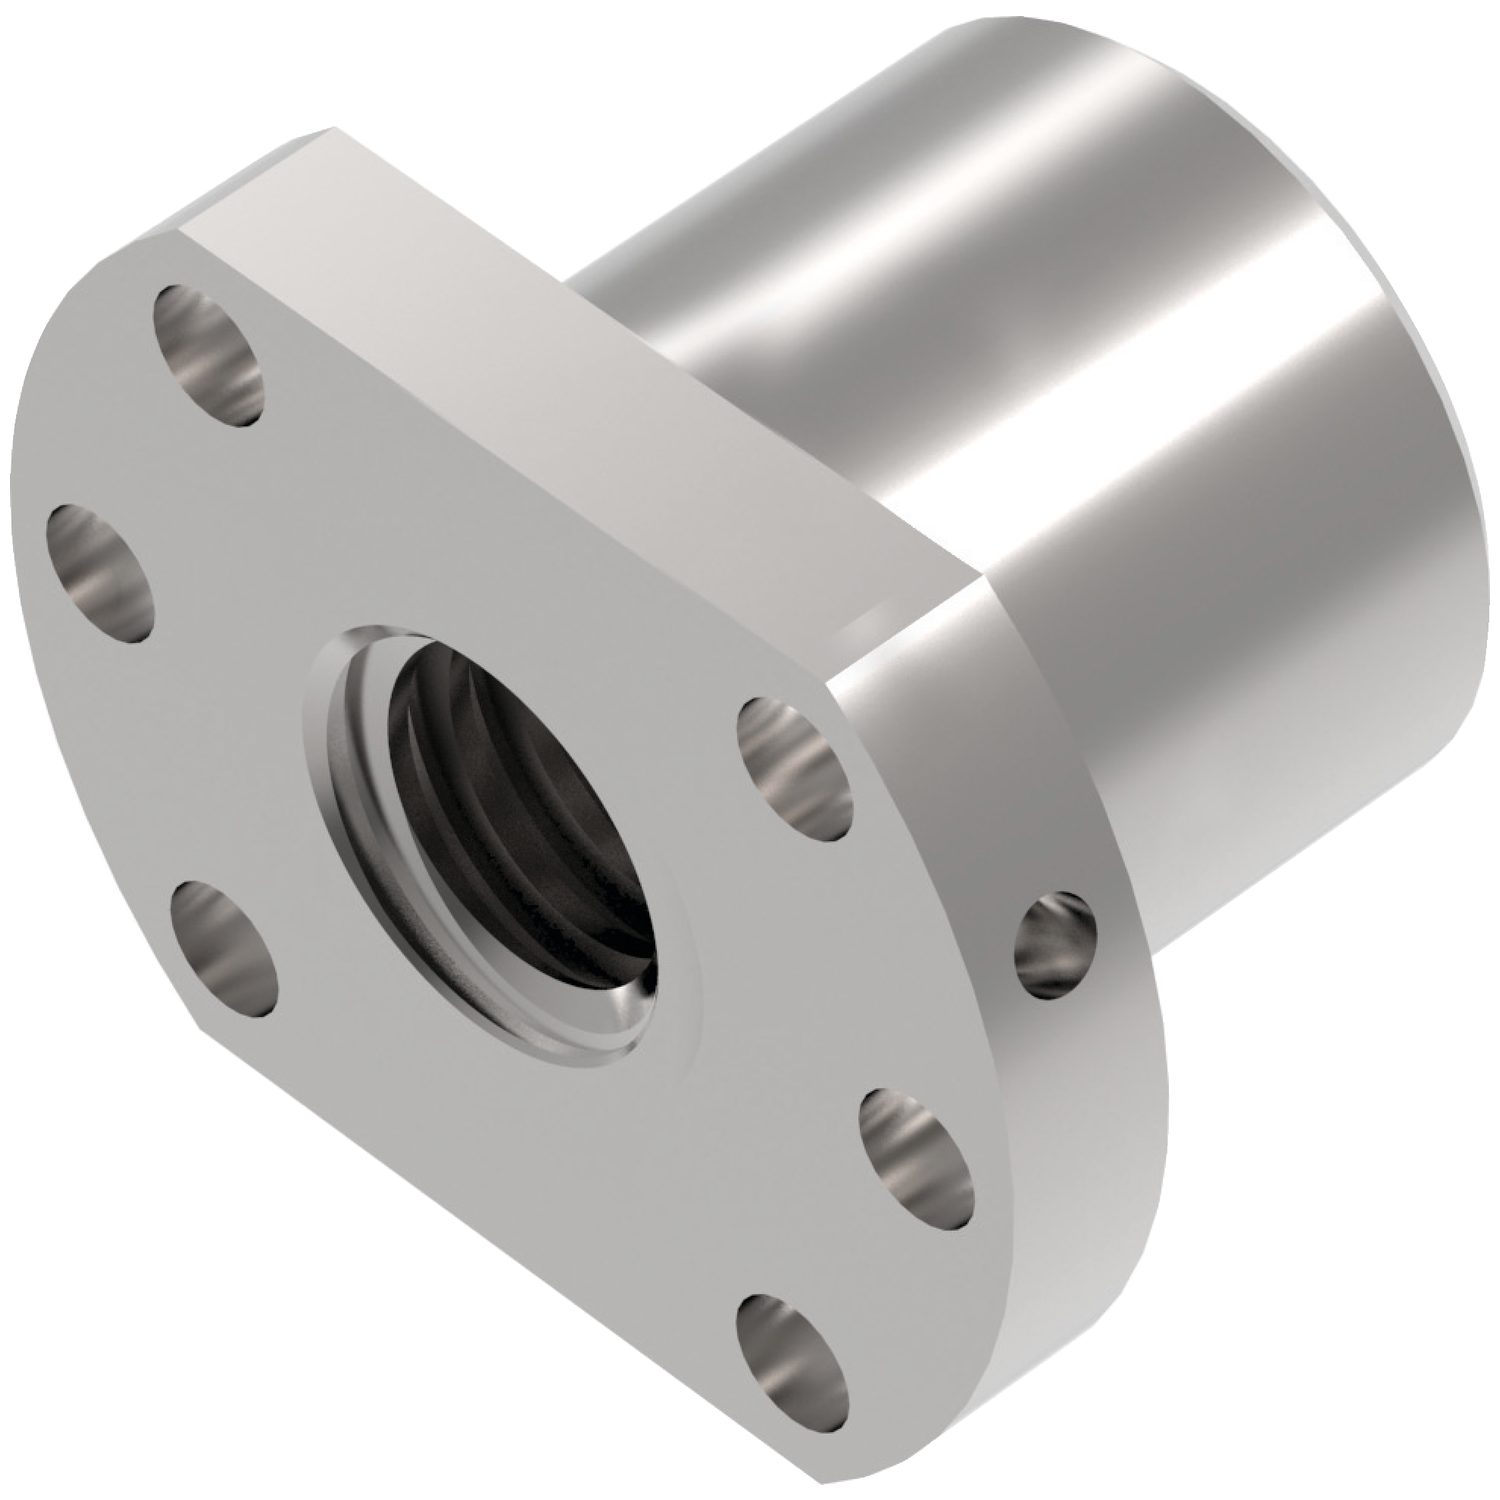 Product L1380, Flanged Ball Nuts DIN 69051, form B /